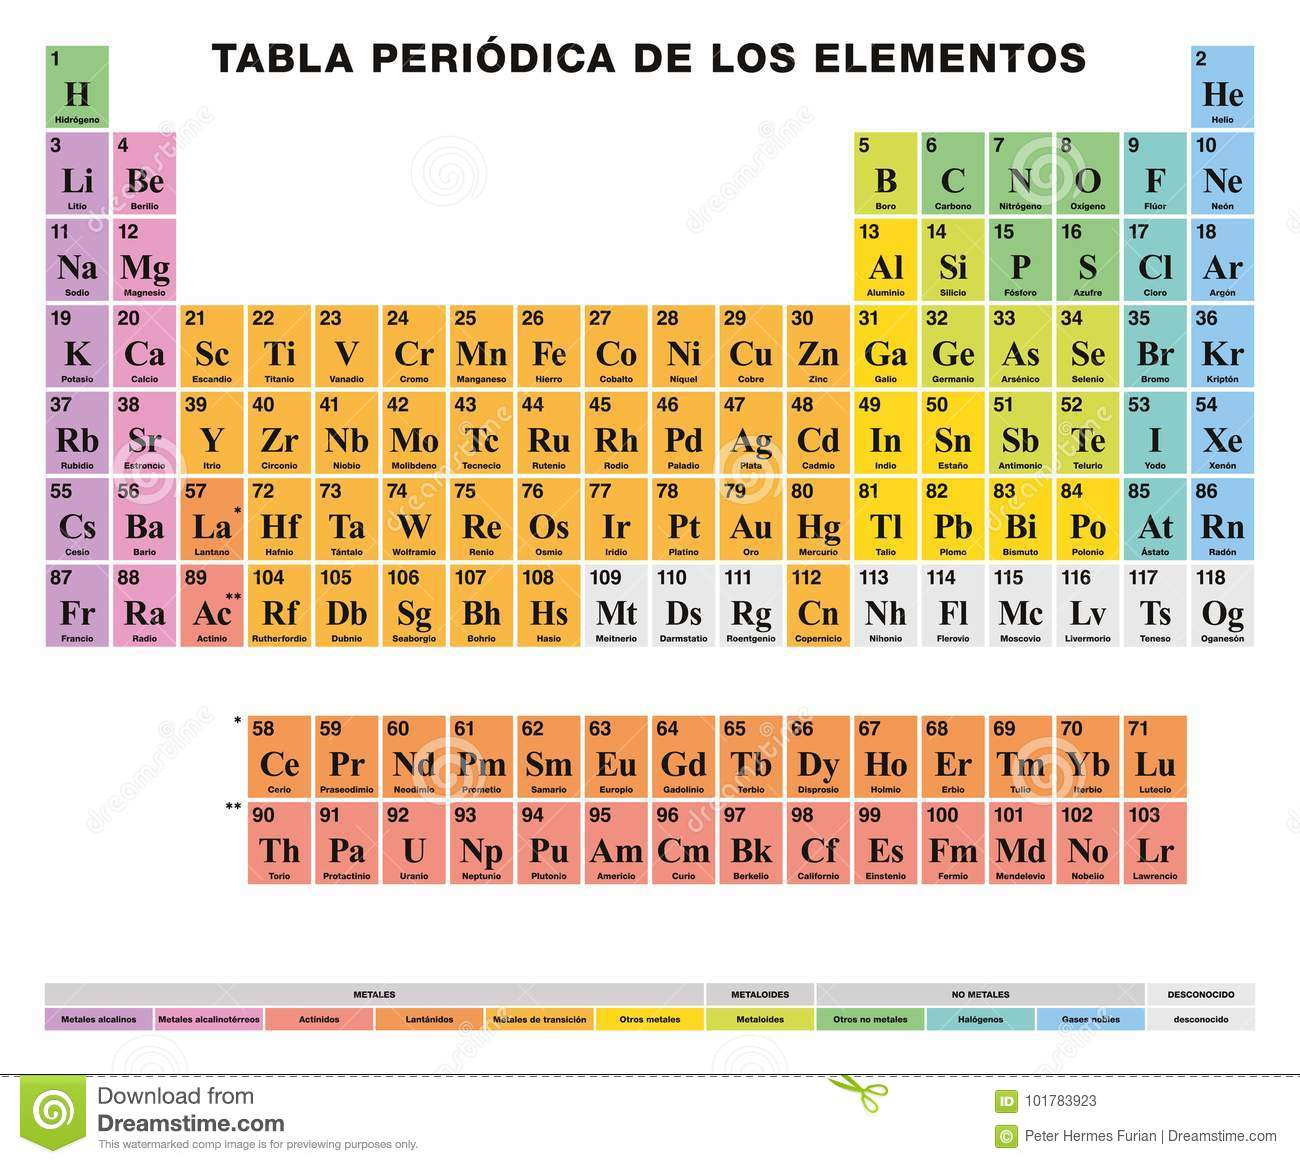 periodic table of the elements spanish labeling colored cells - Periodic Table Of Elements With Everything Labeled On It